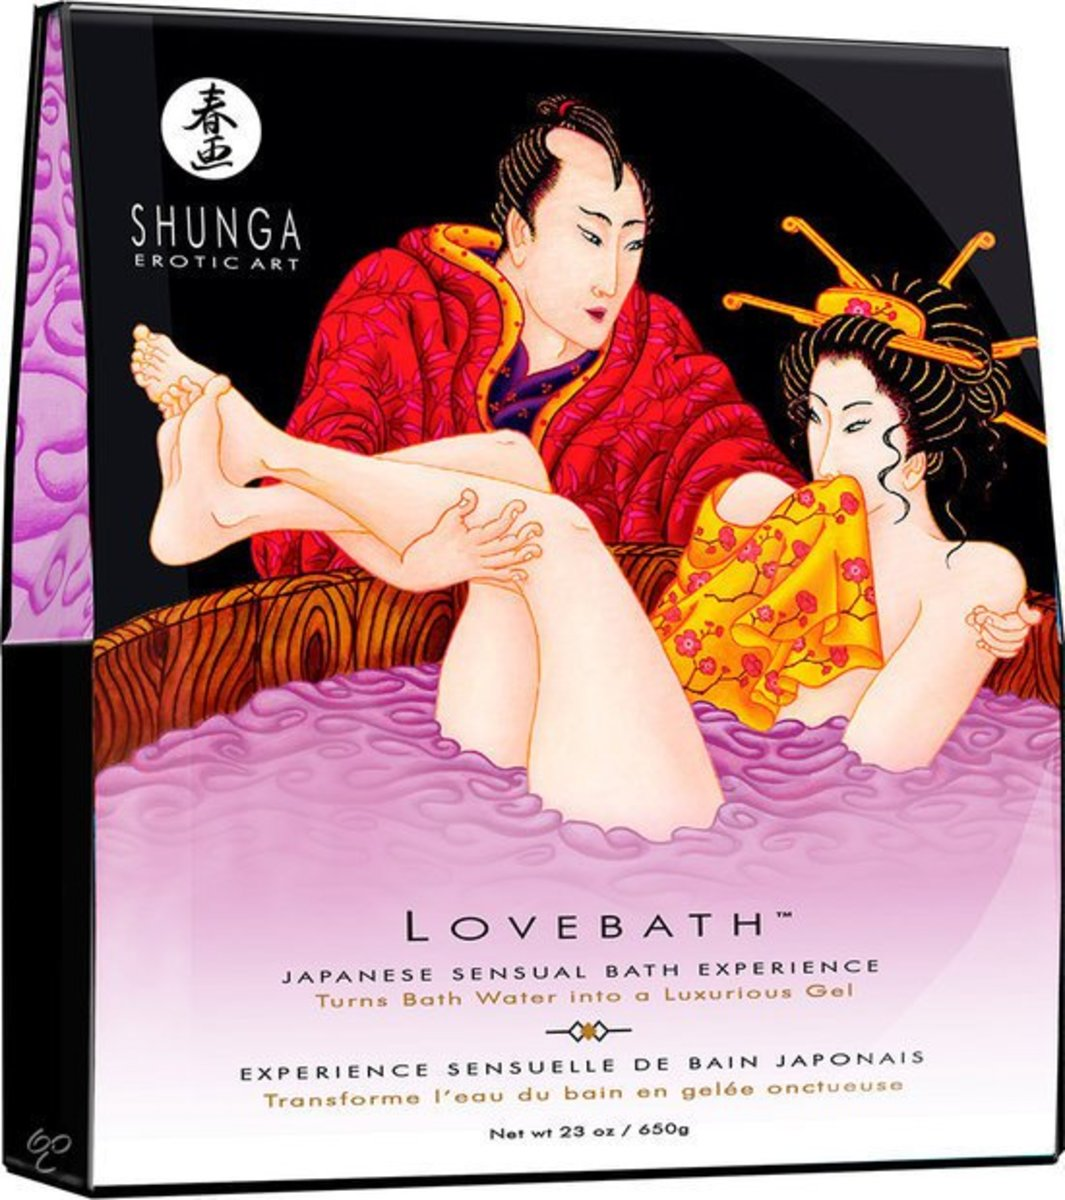 Available at INKEDSHOP.COM: Lovebath (Dragon Fruit)